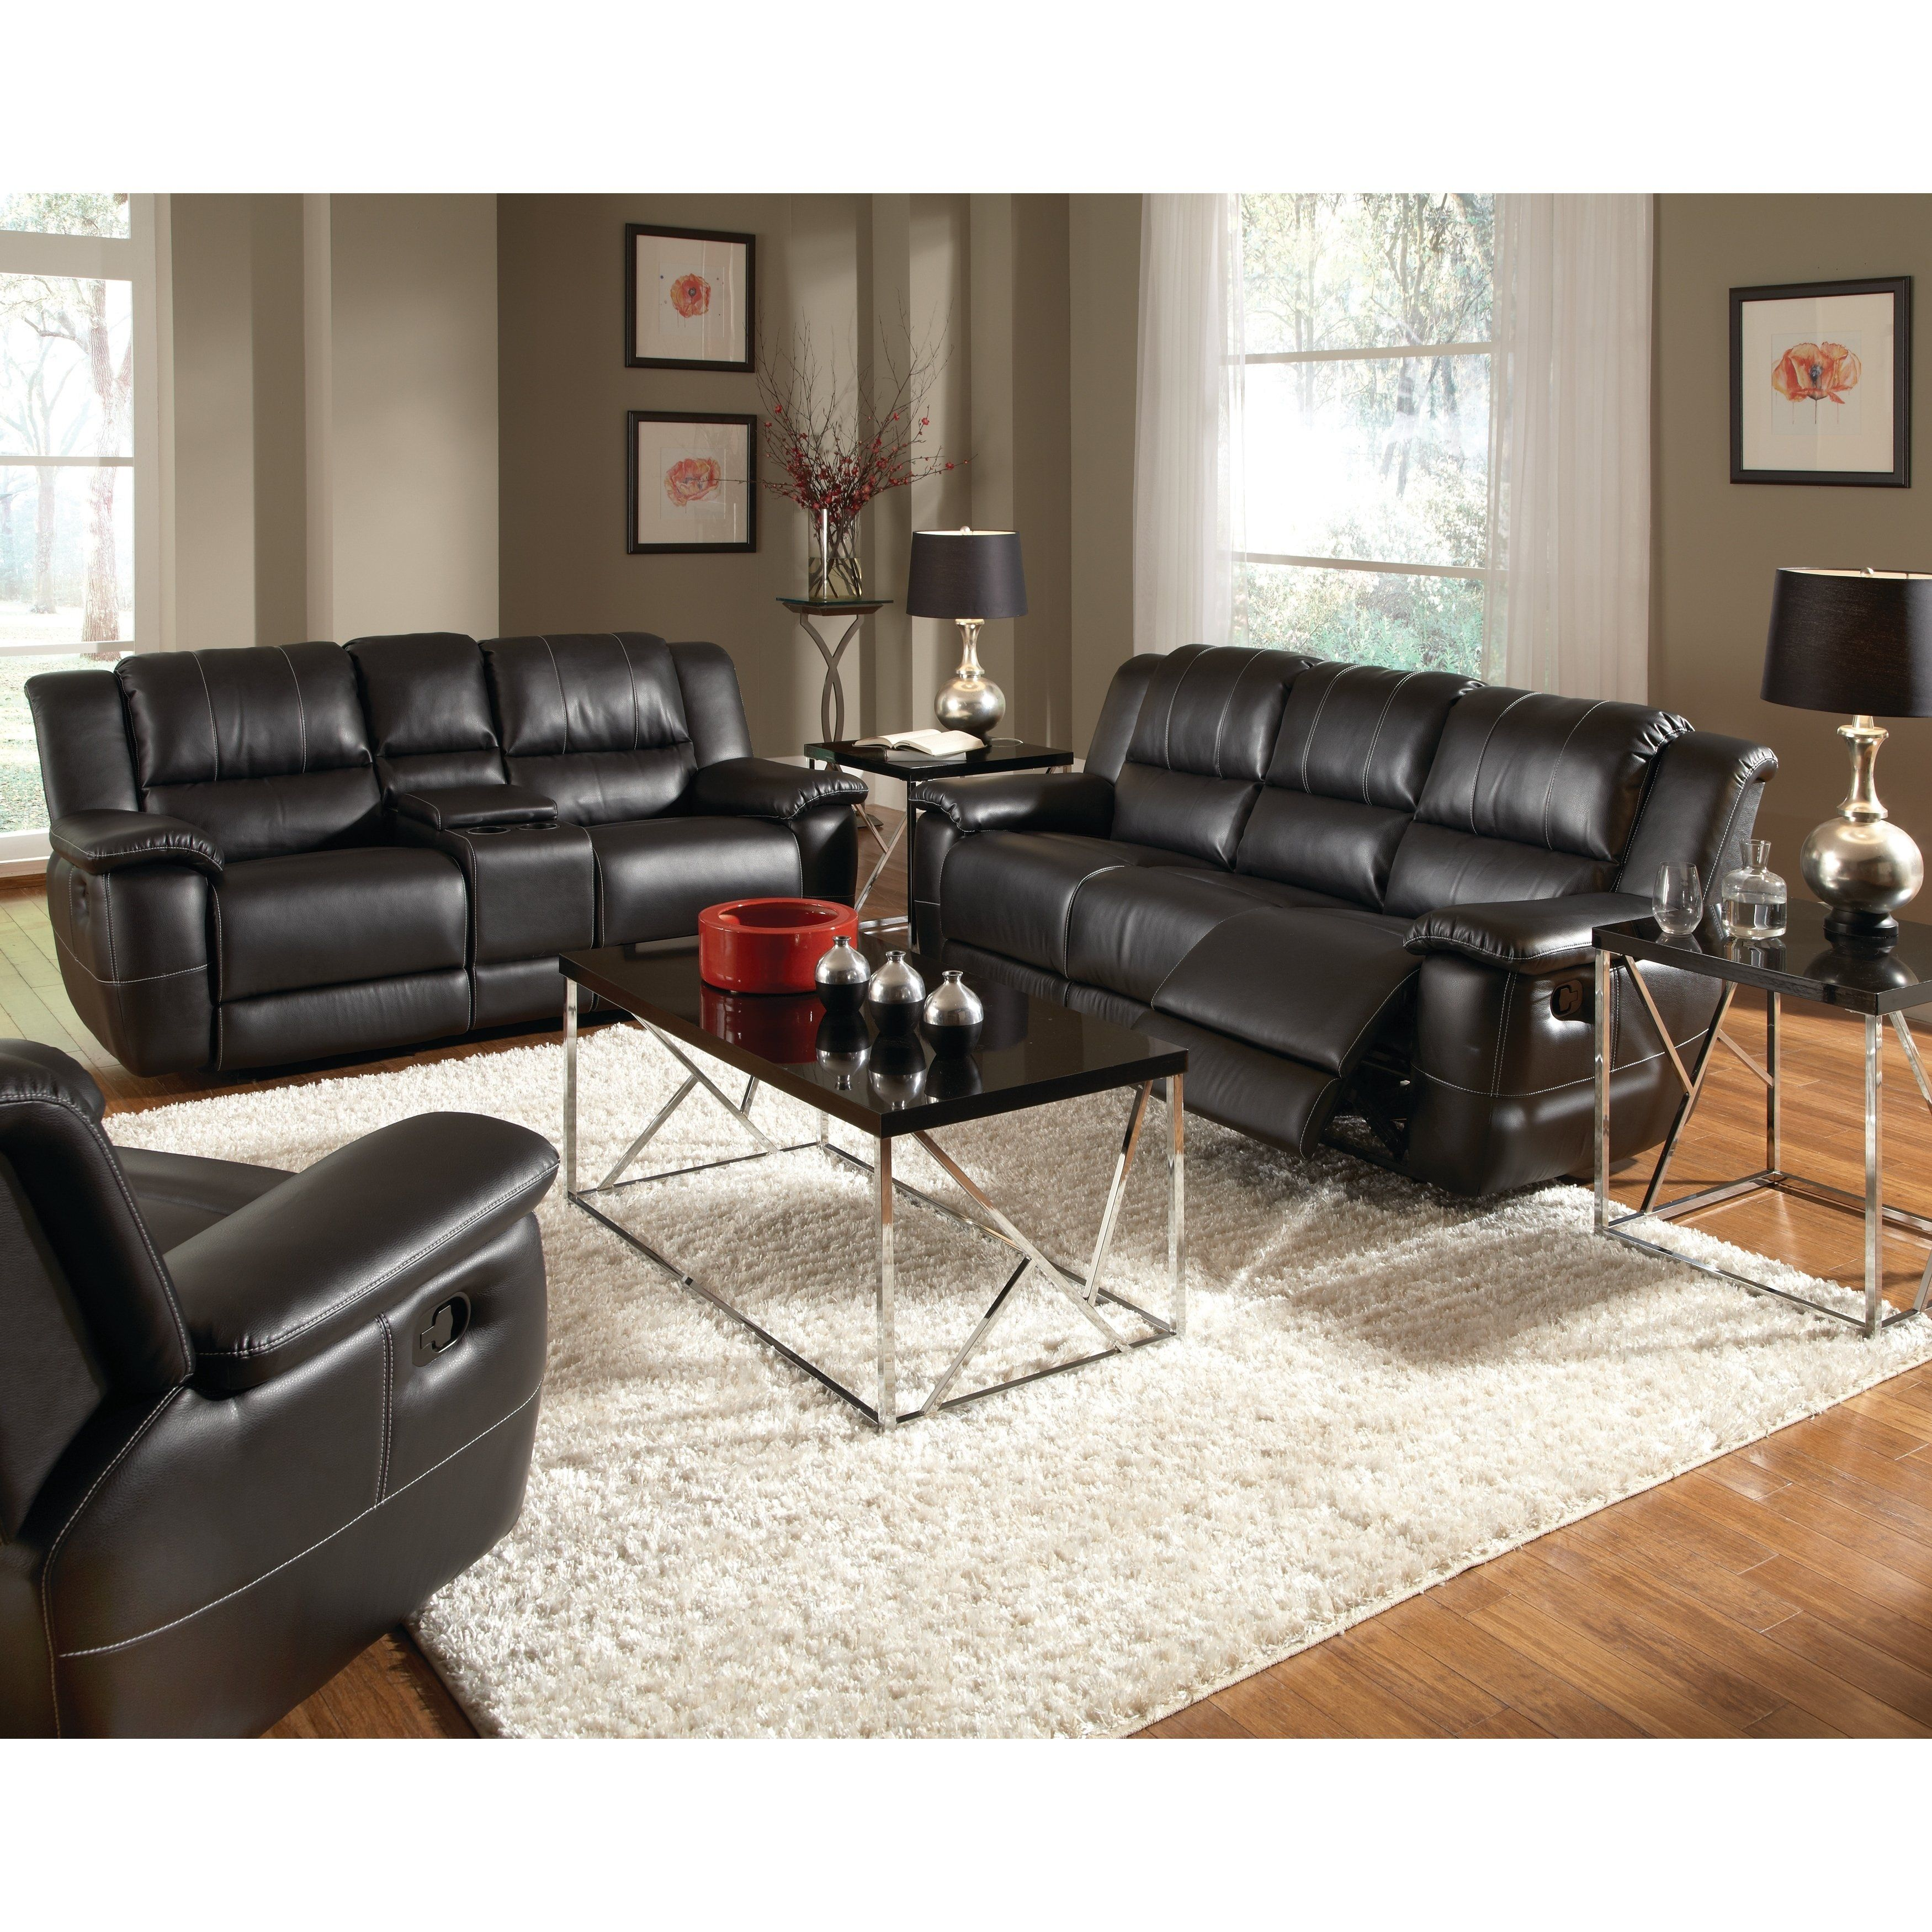 Pin By John Edmar Segovia Soto On Casa In 2020 Leather Couches Living Room Black Leather Couch Living Room Living Room Leather